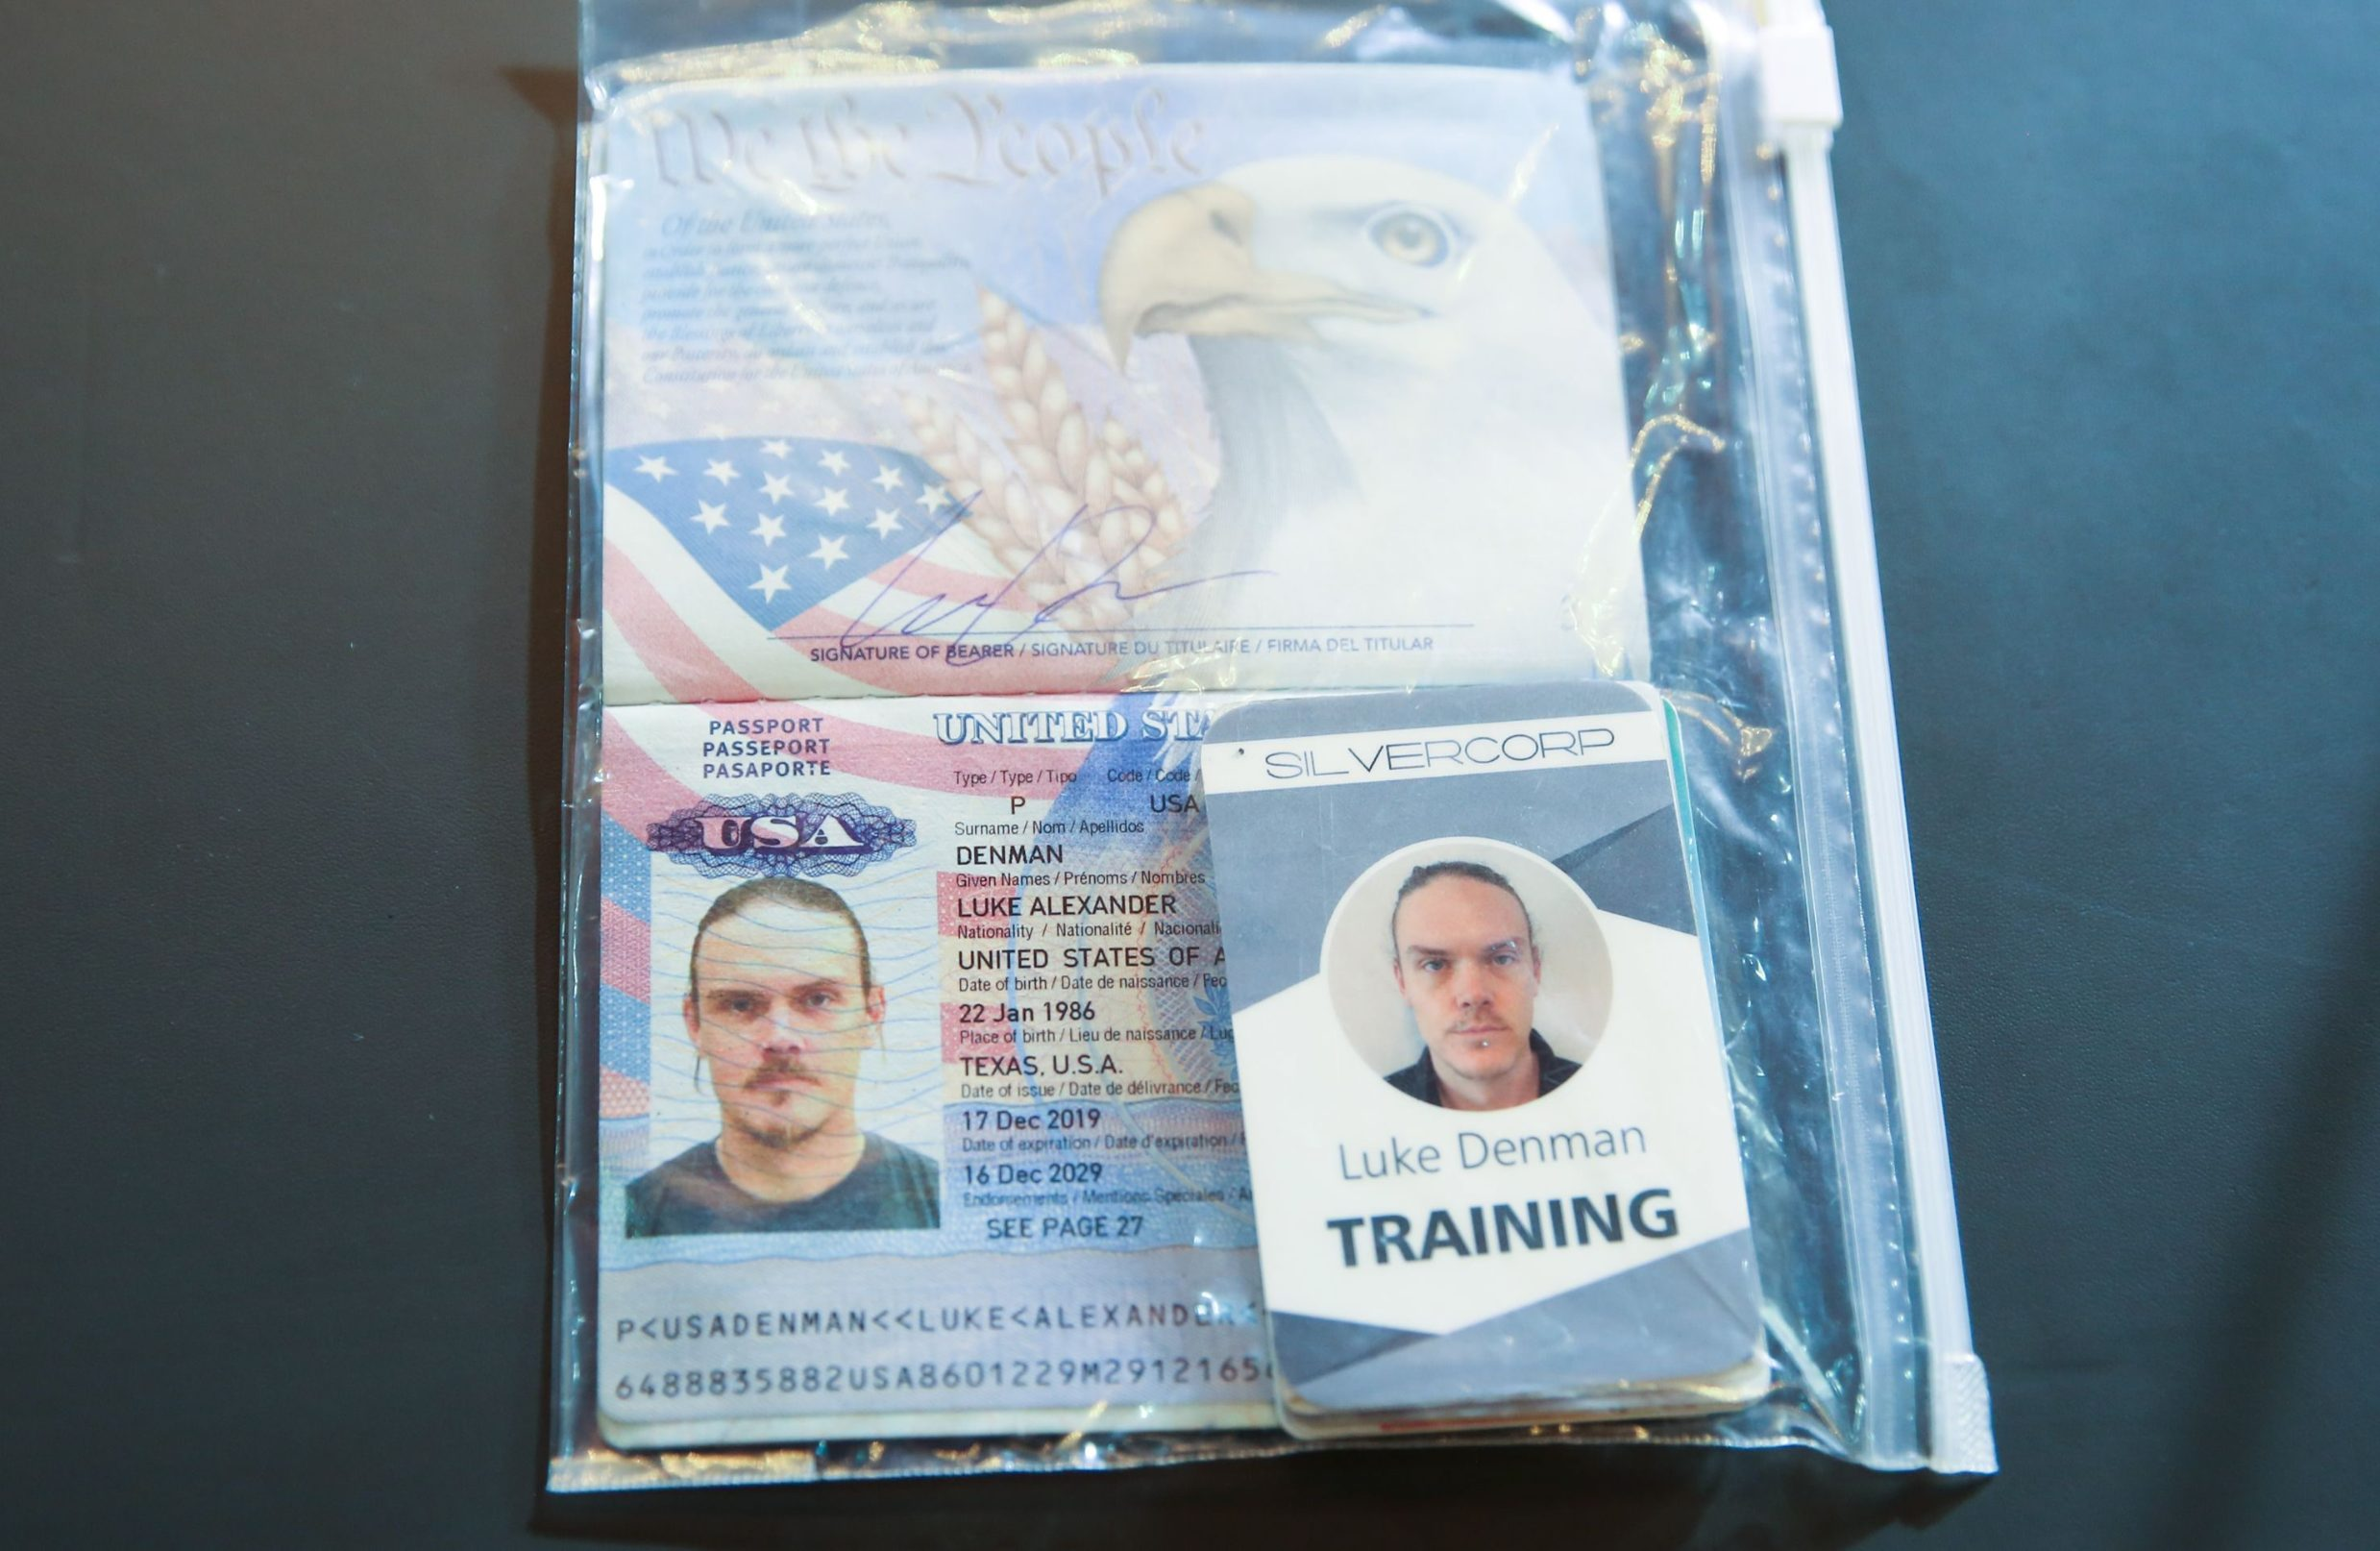 Handout picture released by the Venezuelan Presidency showing the passport of arrrested US citizen Luke Deman, during a video conference meeting with international media correspondents, at Miraflores Presidential Palace in Caracas, on May 6, 2020. - Venezuela is to try two Americans, identified as Luke Denman and Airan Berry, allegedly captured during a failed sea attack by mercenaries, President Nicolas Maduro said on May 6. (Photo by Marcelo Garcia / Venezuelan Presidency / AFP) / RESTRICTED TO EDITORIAL USE - MANDATORY CREDIT